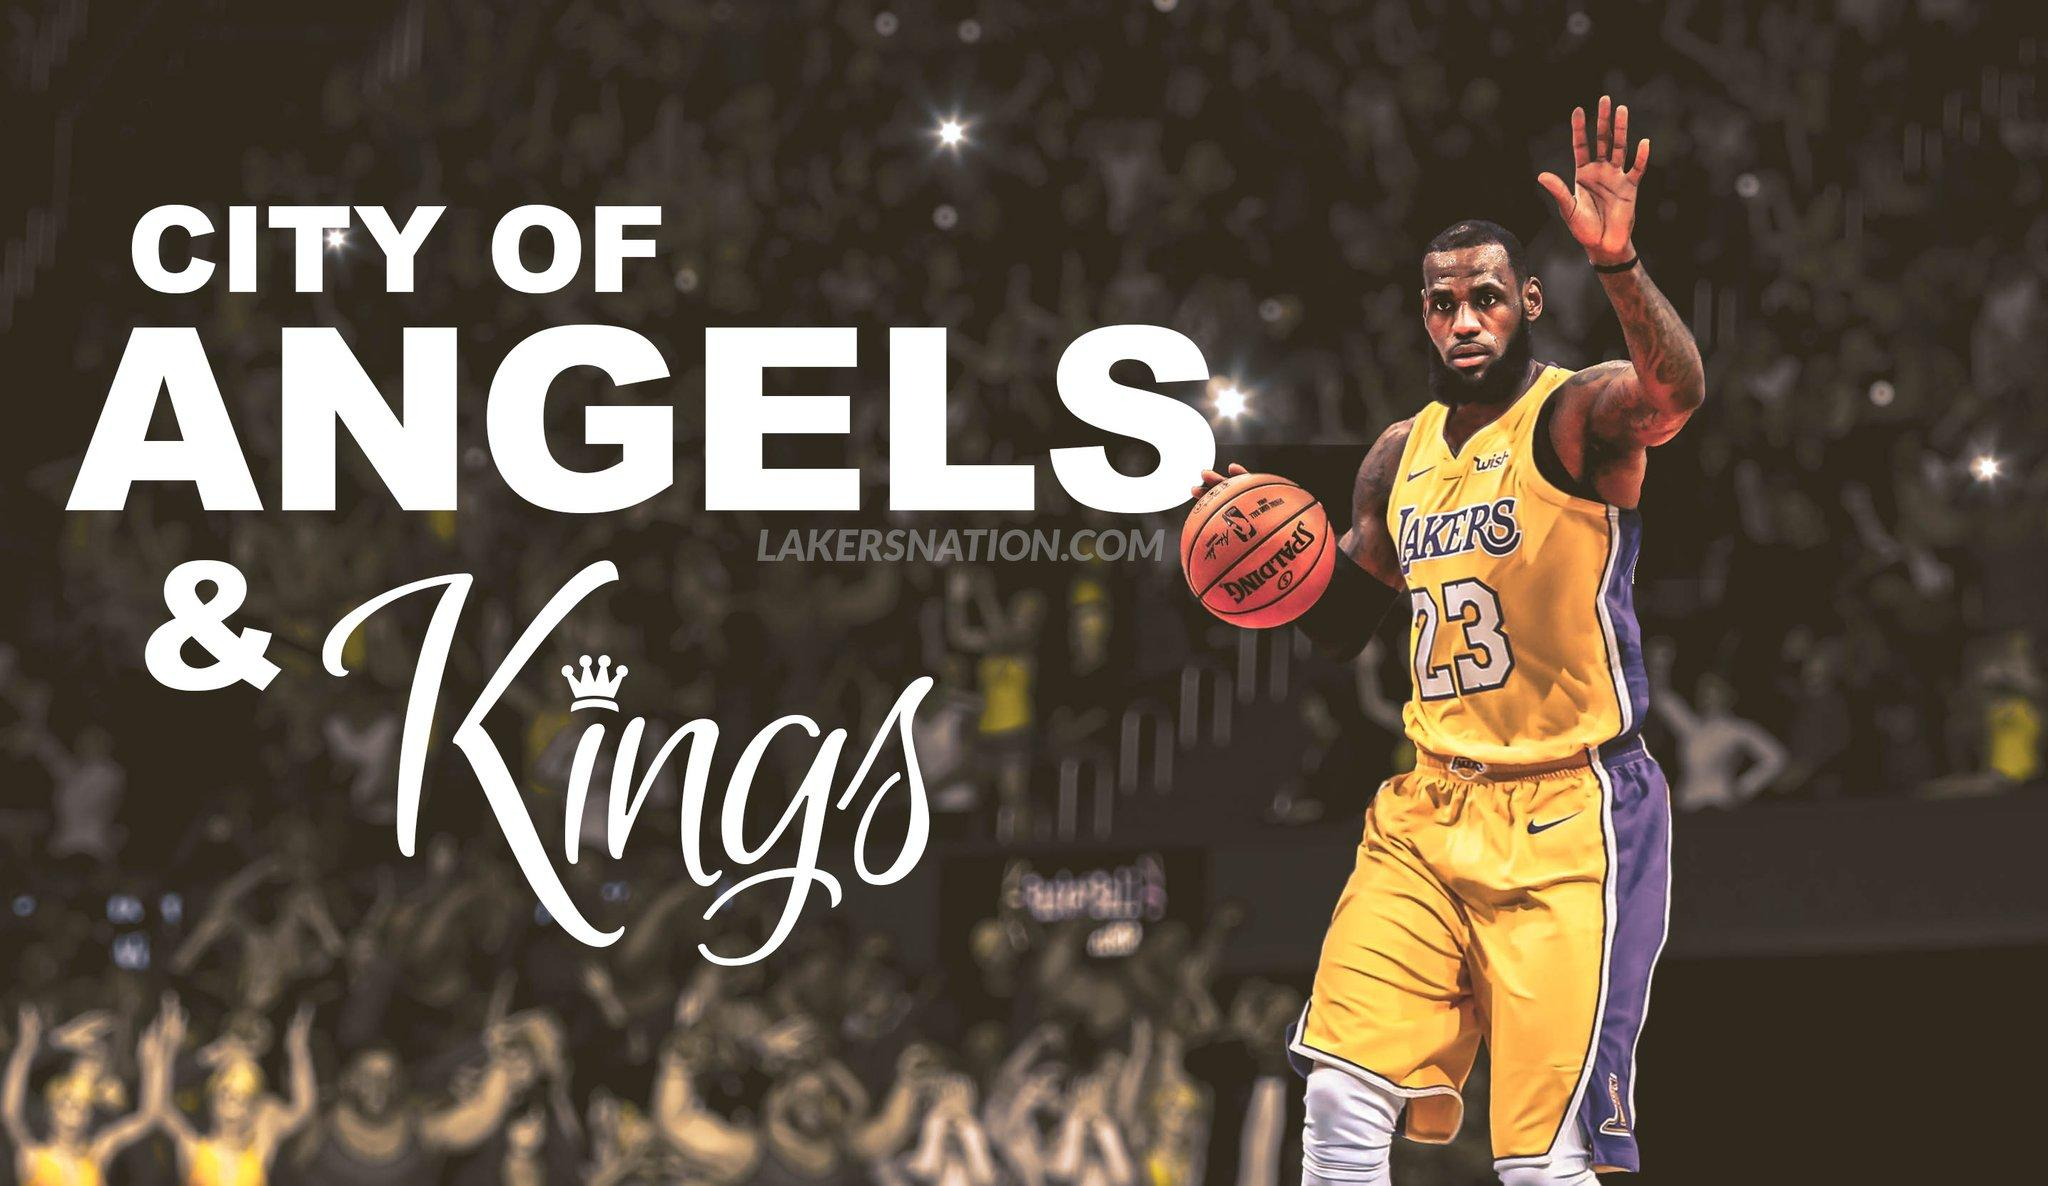 King to Los Angeles Lakers